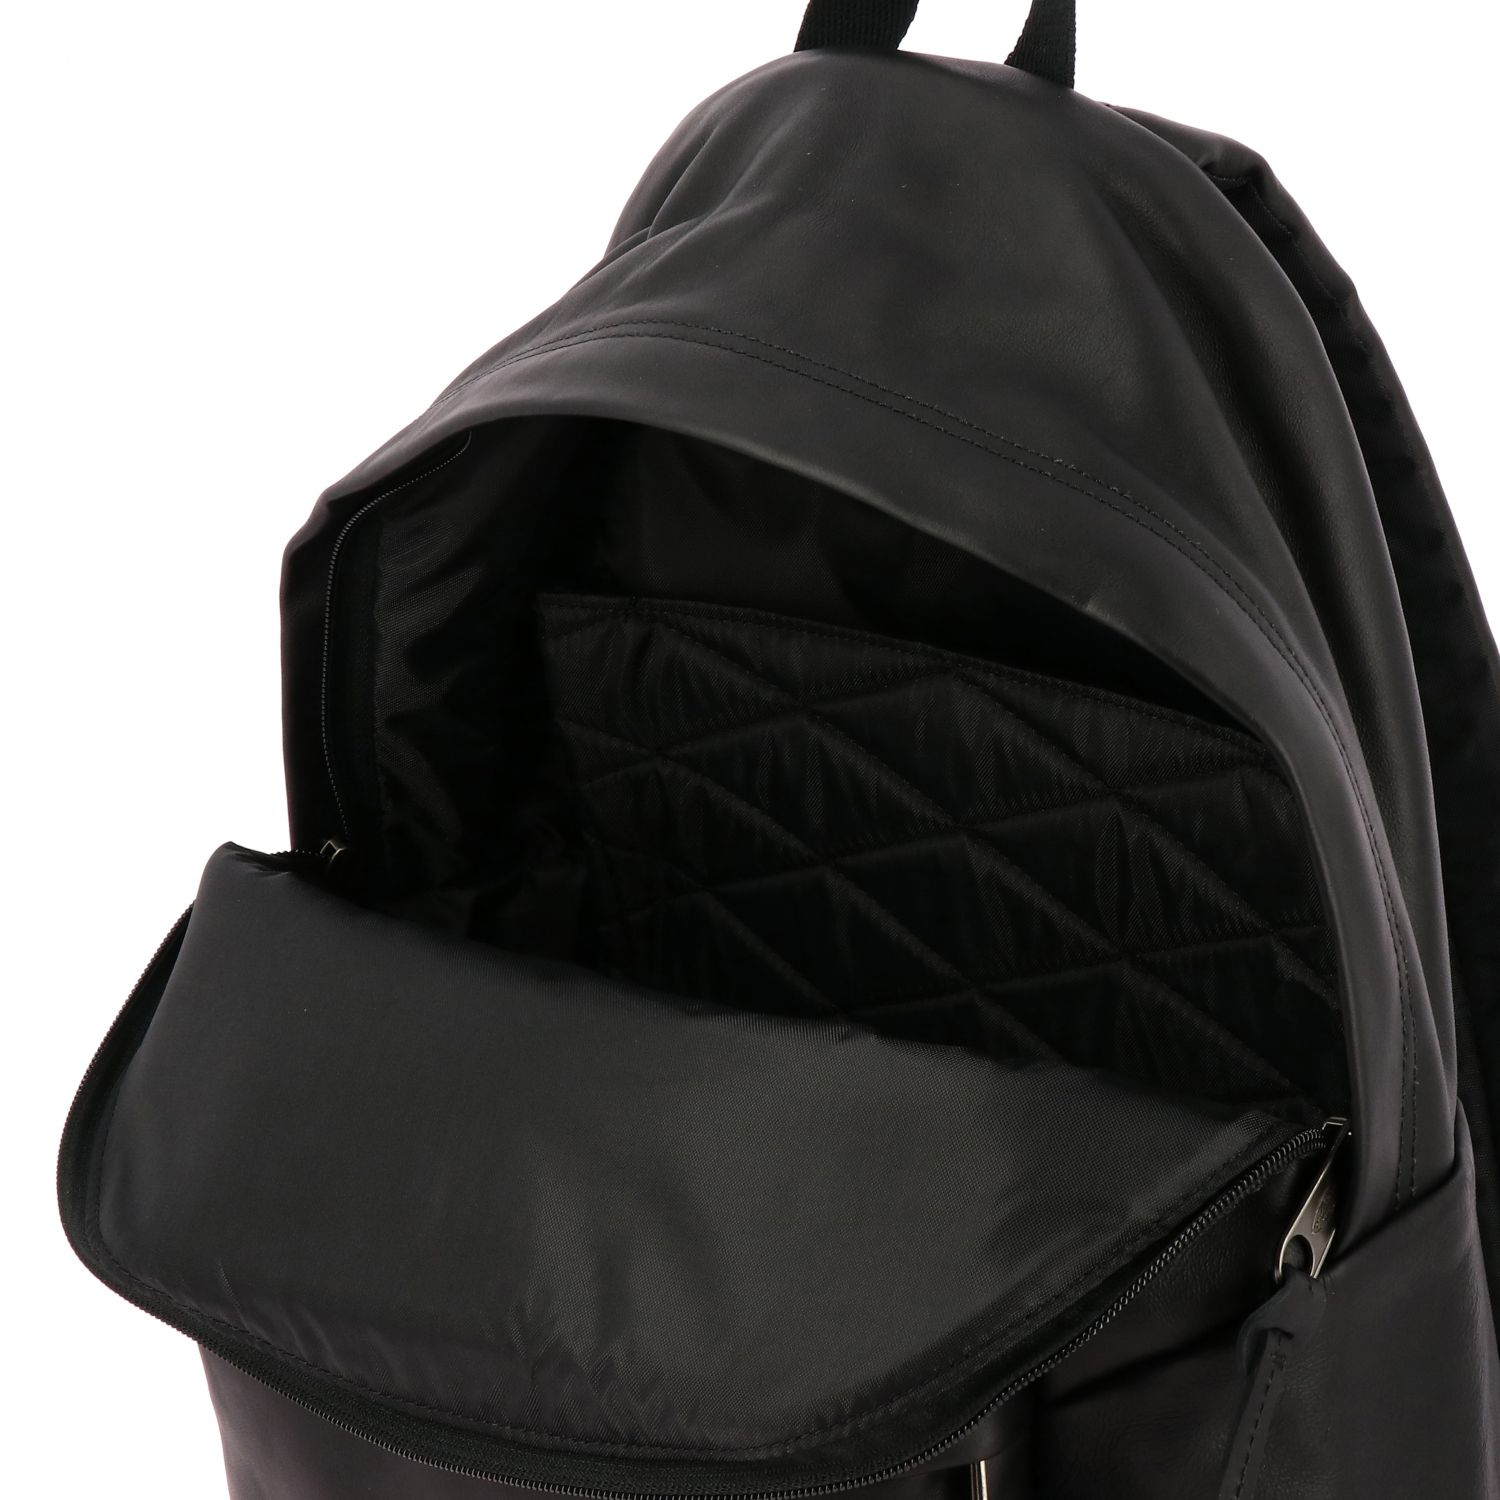 Backpack Eastpak: Shoulder bag women Eastpak black 5